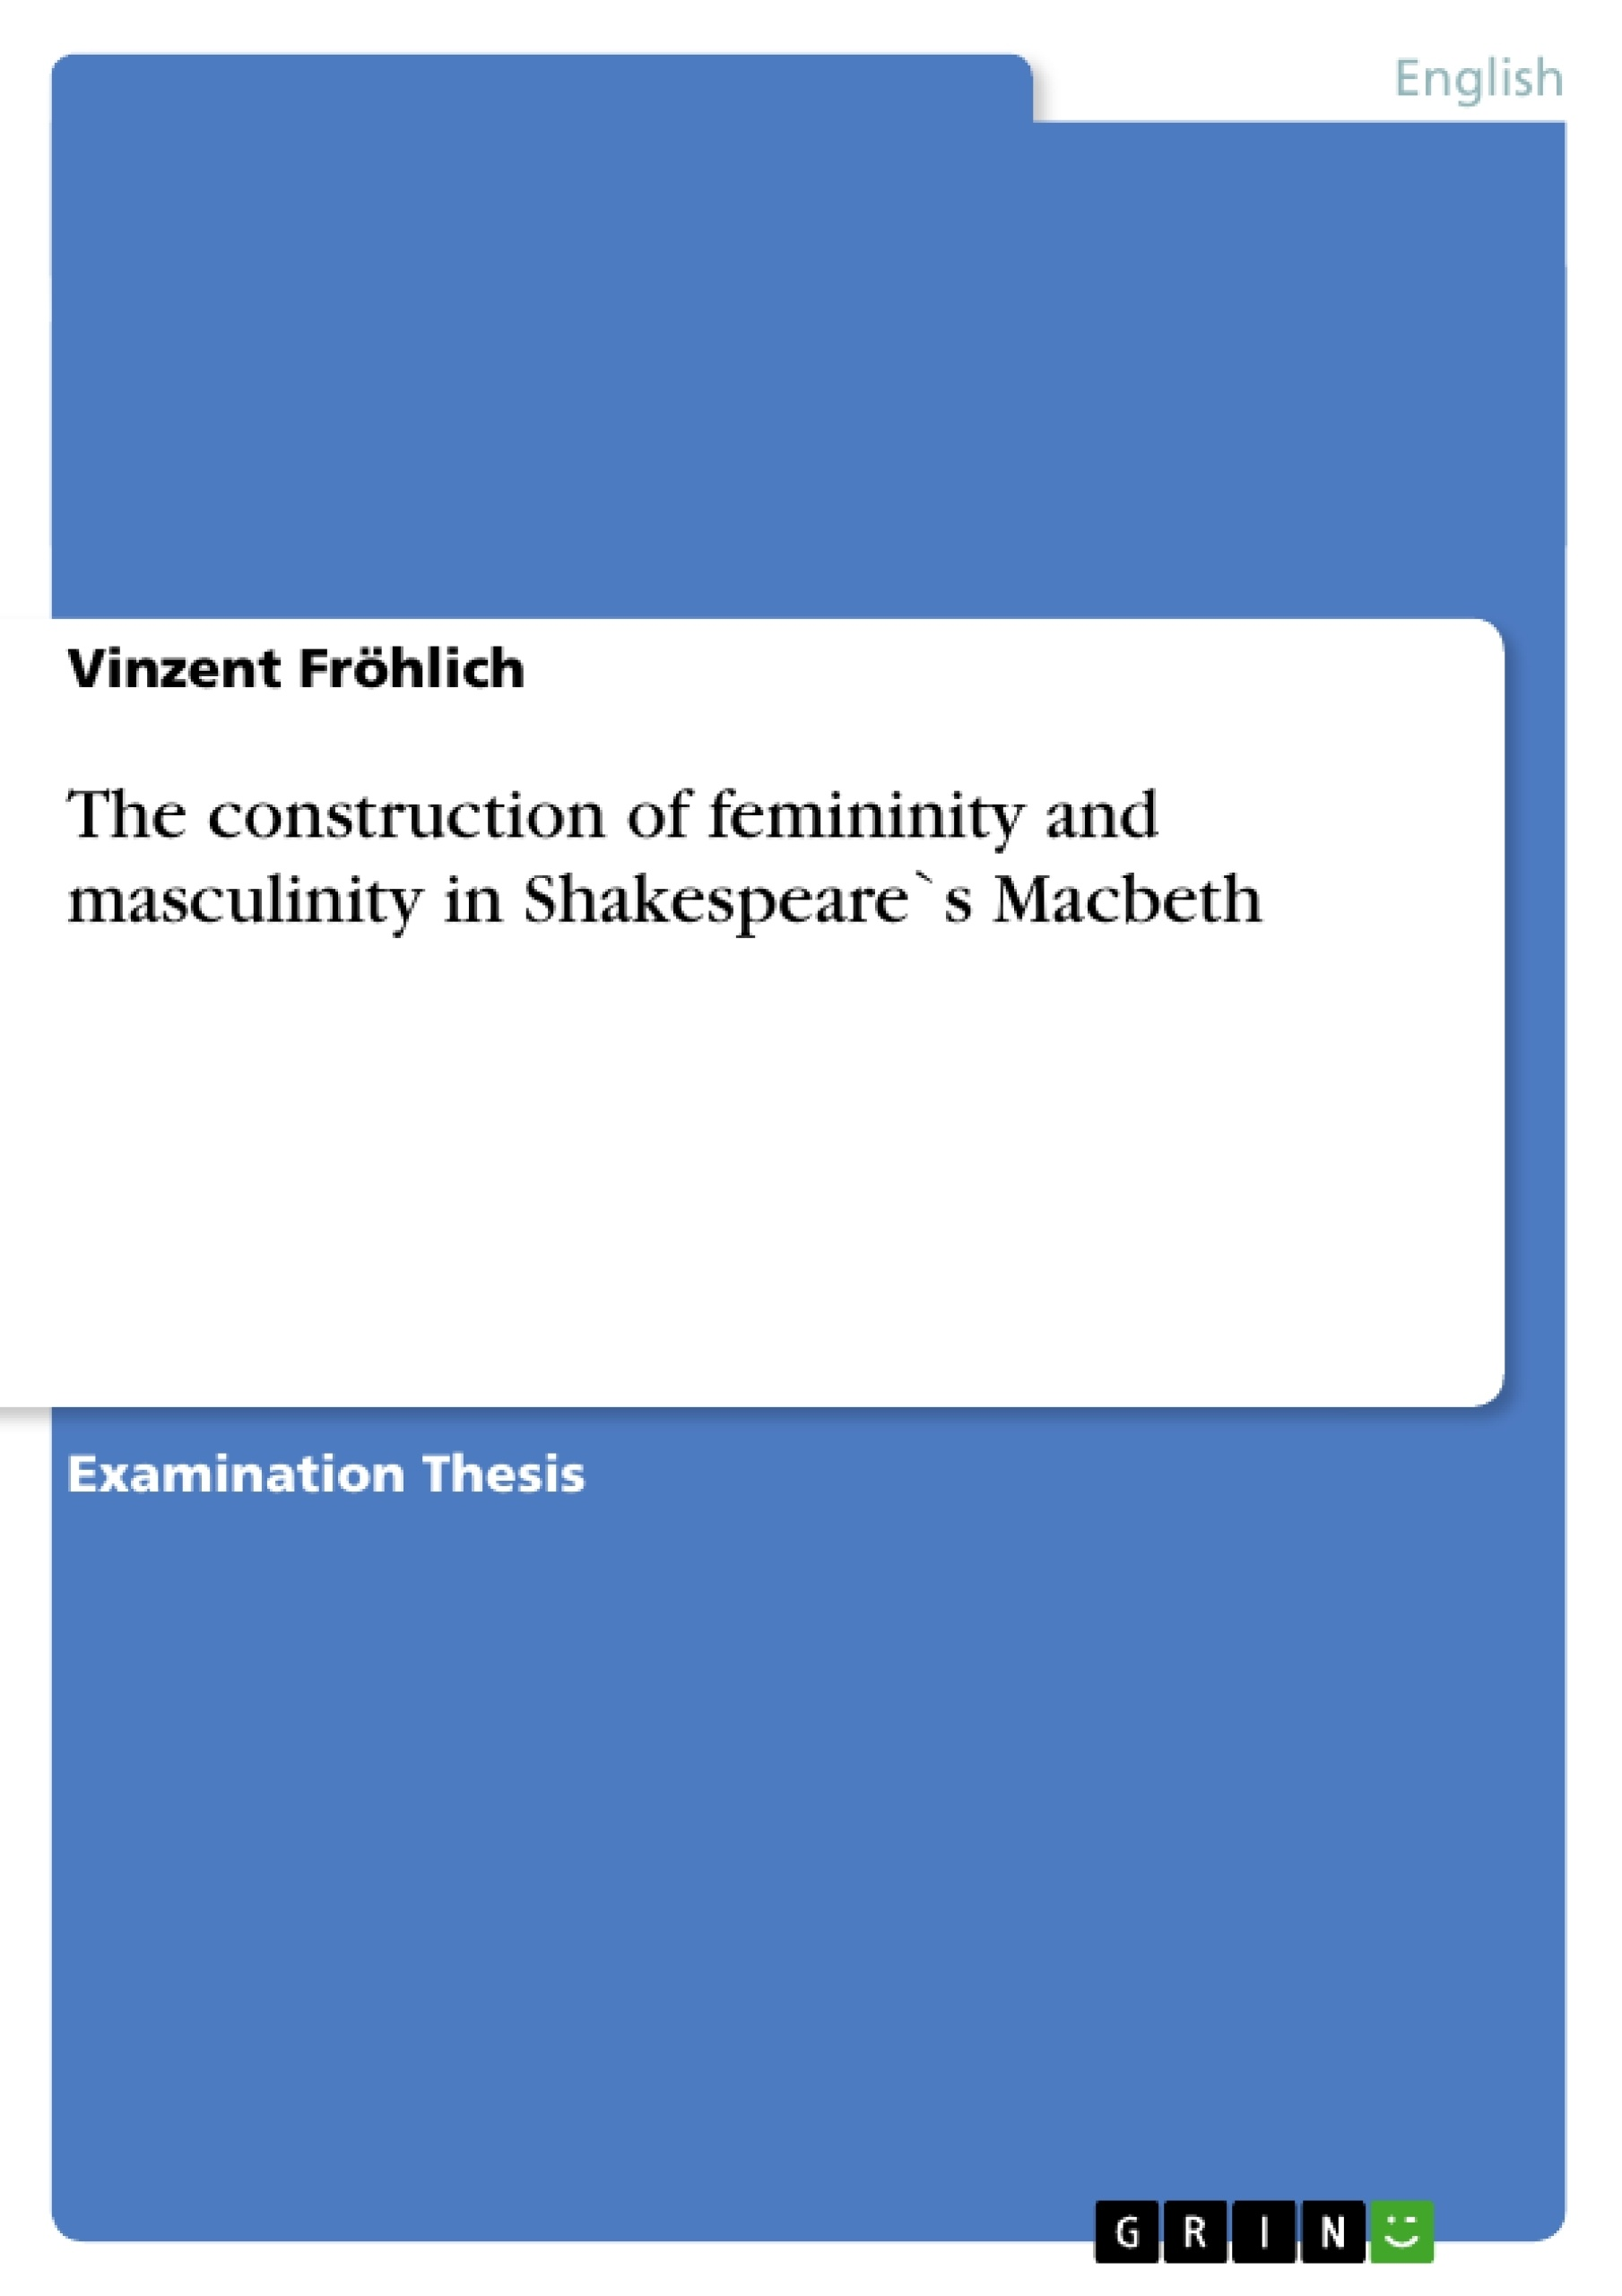 Title: The construction of femininity and masculinity in Shakespeare`s Macbeth